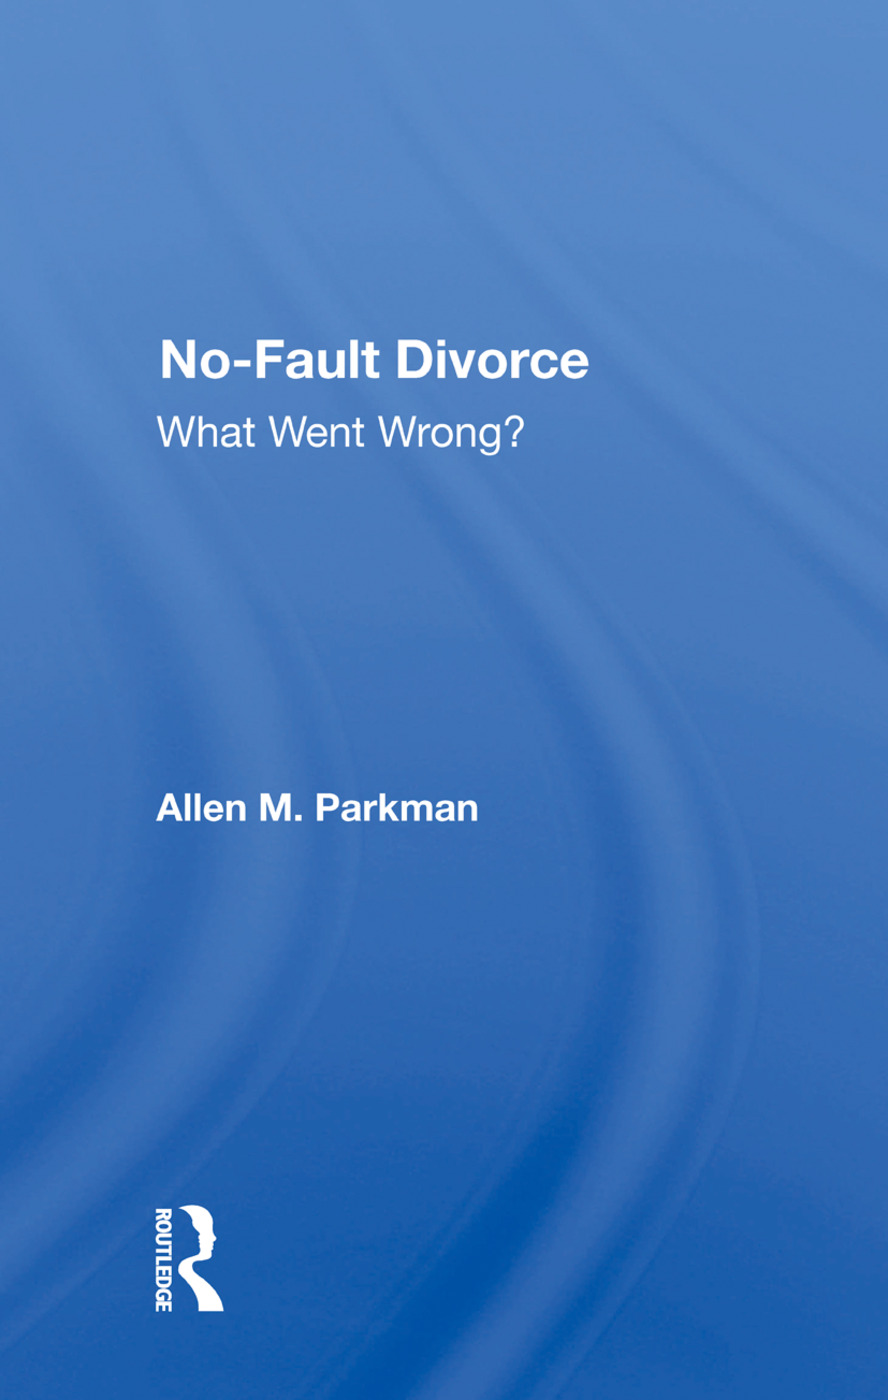 No-Fault Divorce: What Went Wrong? book cover